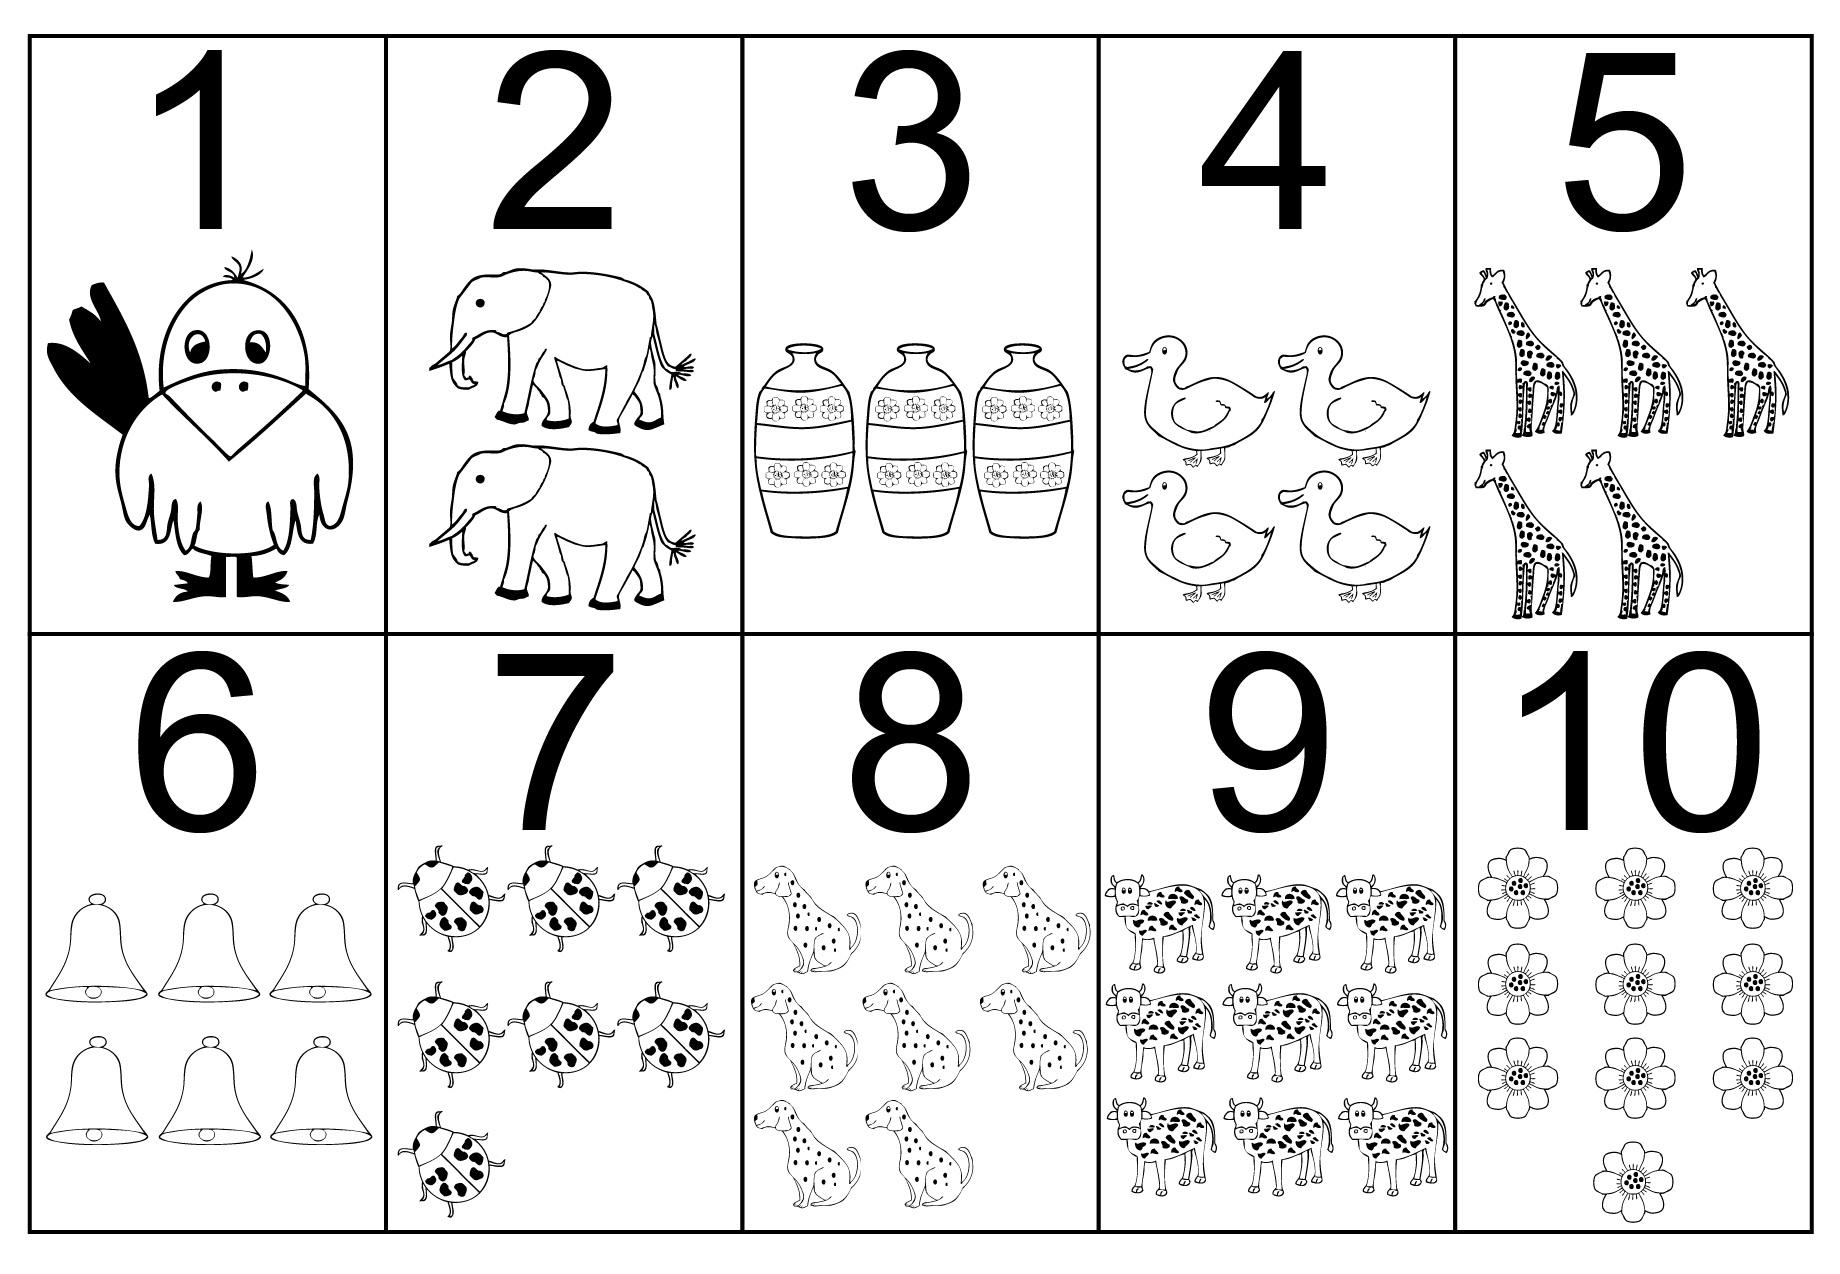 Uncategorized Number Coloring Pages 1-10 numbers coloring pages murderthestout free printable number for kids